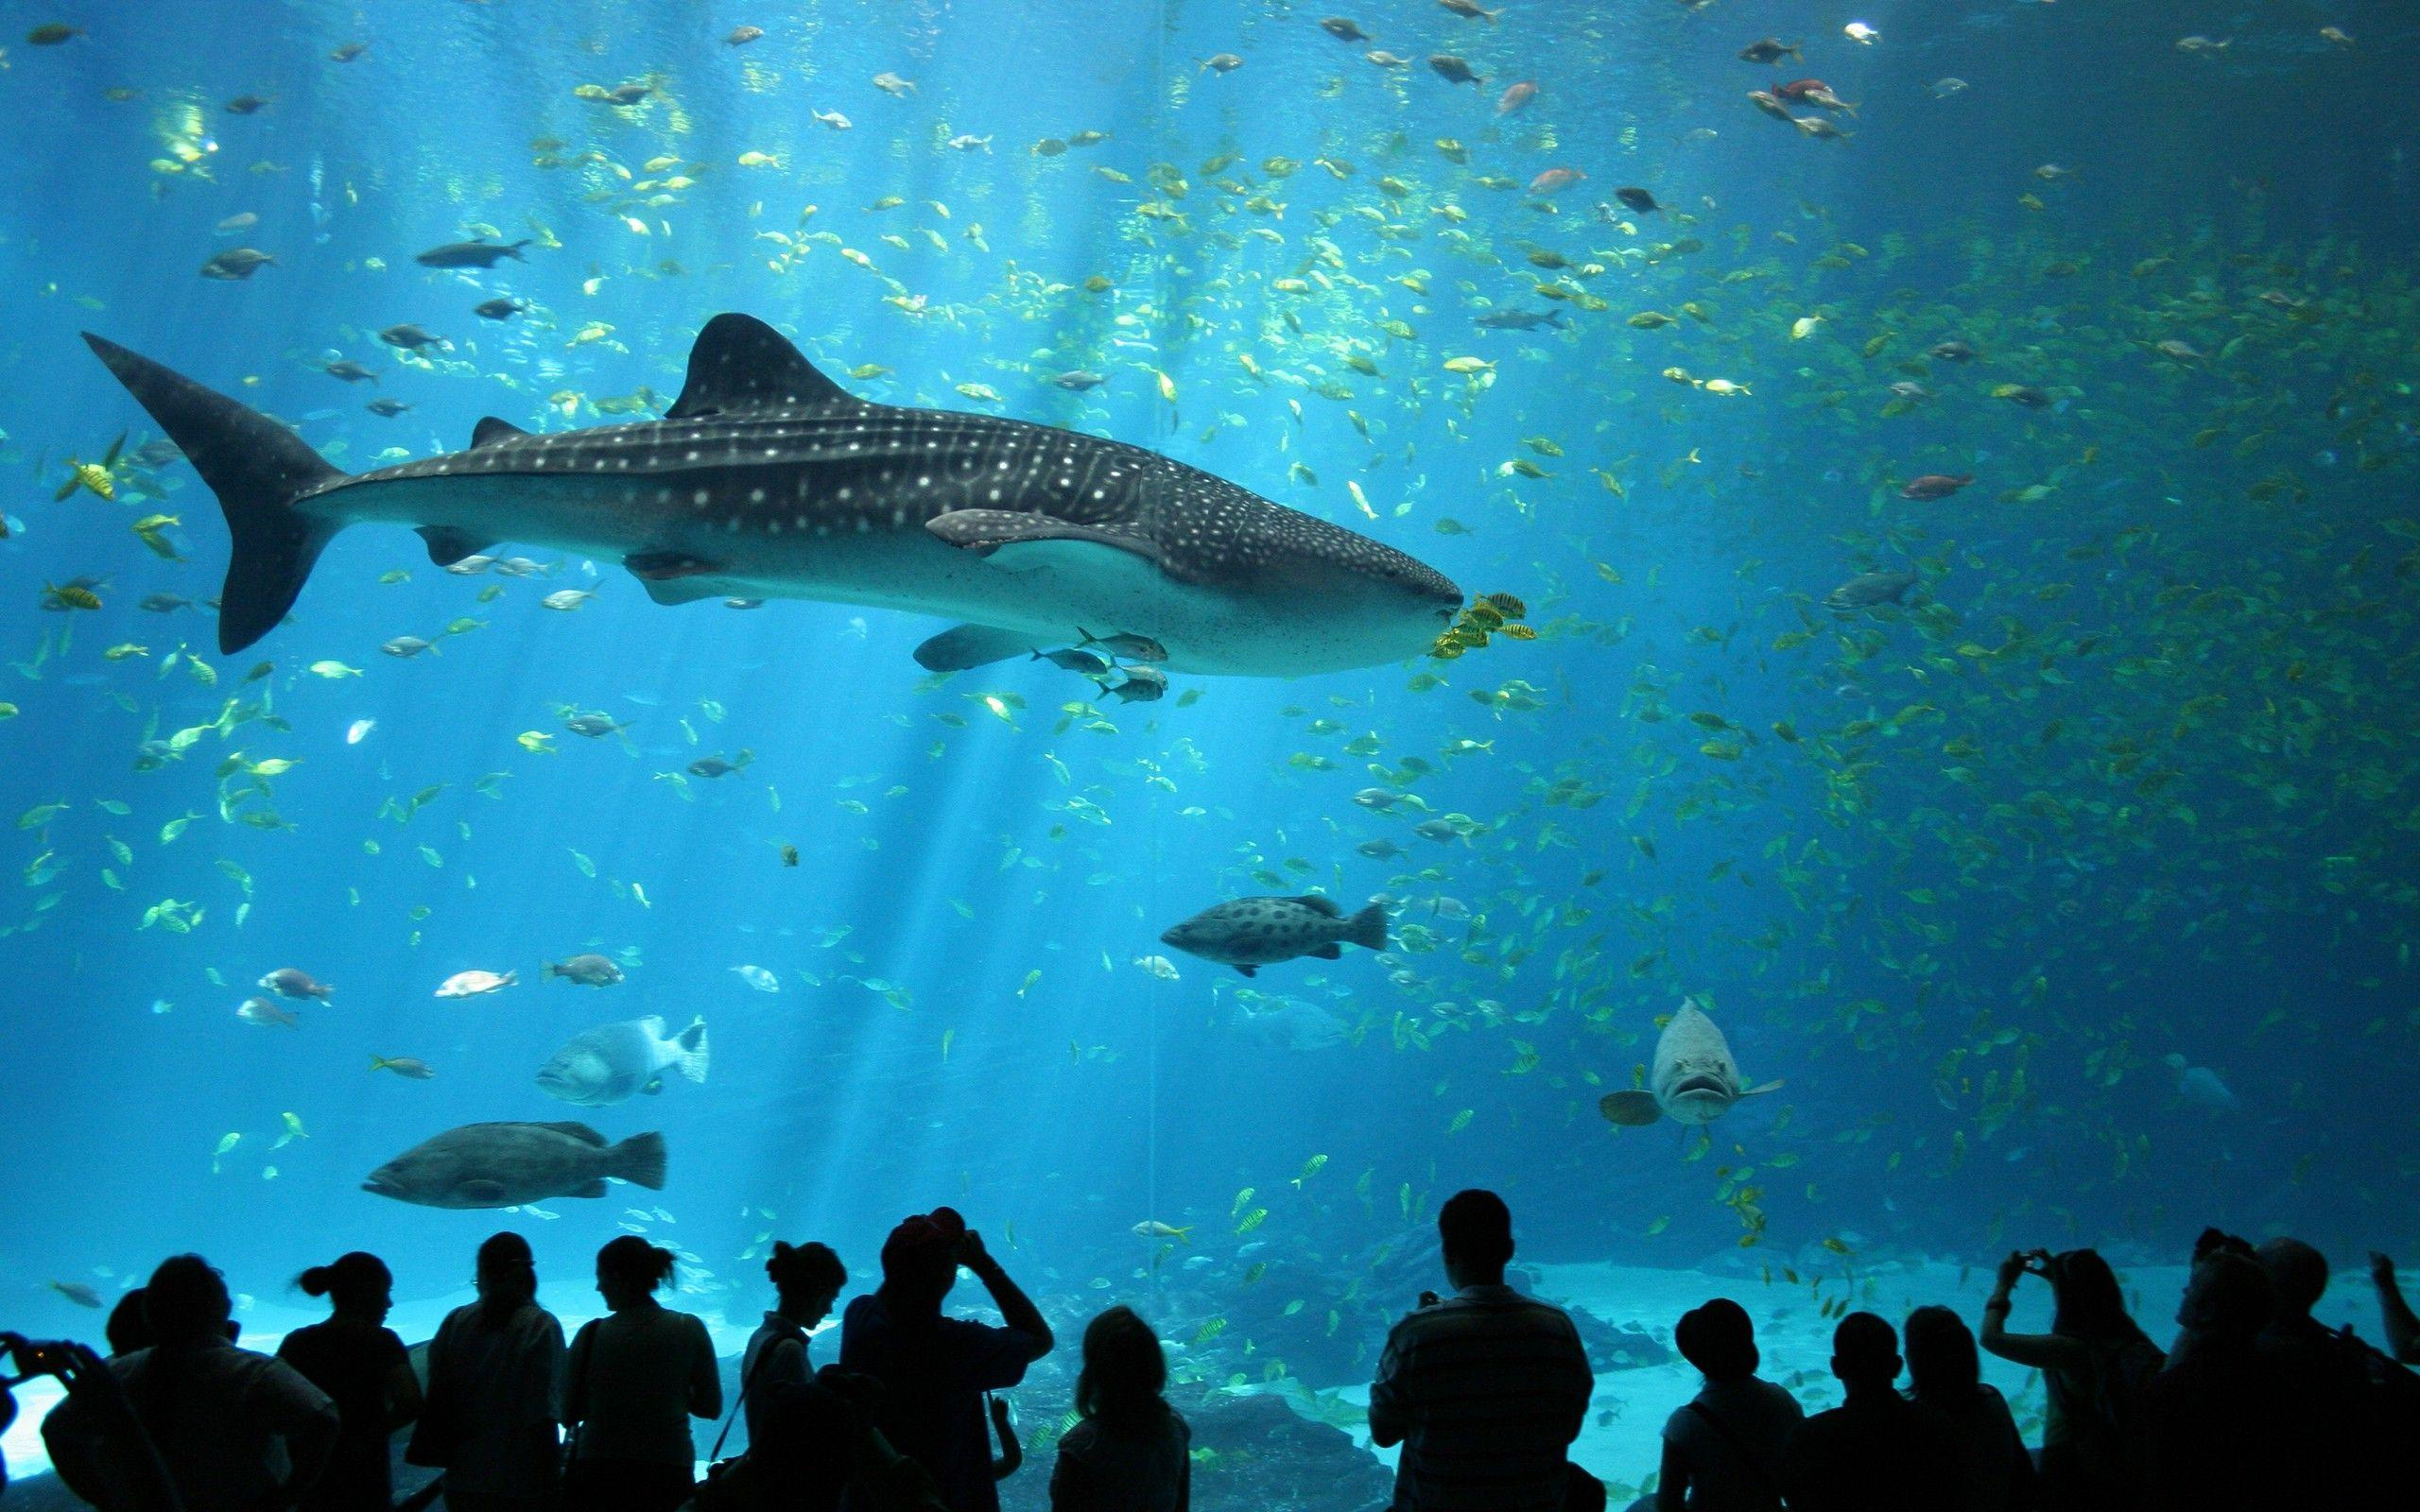 animals, Wildlife, Nature, Sea, Fish, Whale Shark, Shark, Aquarium ...